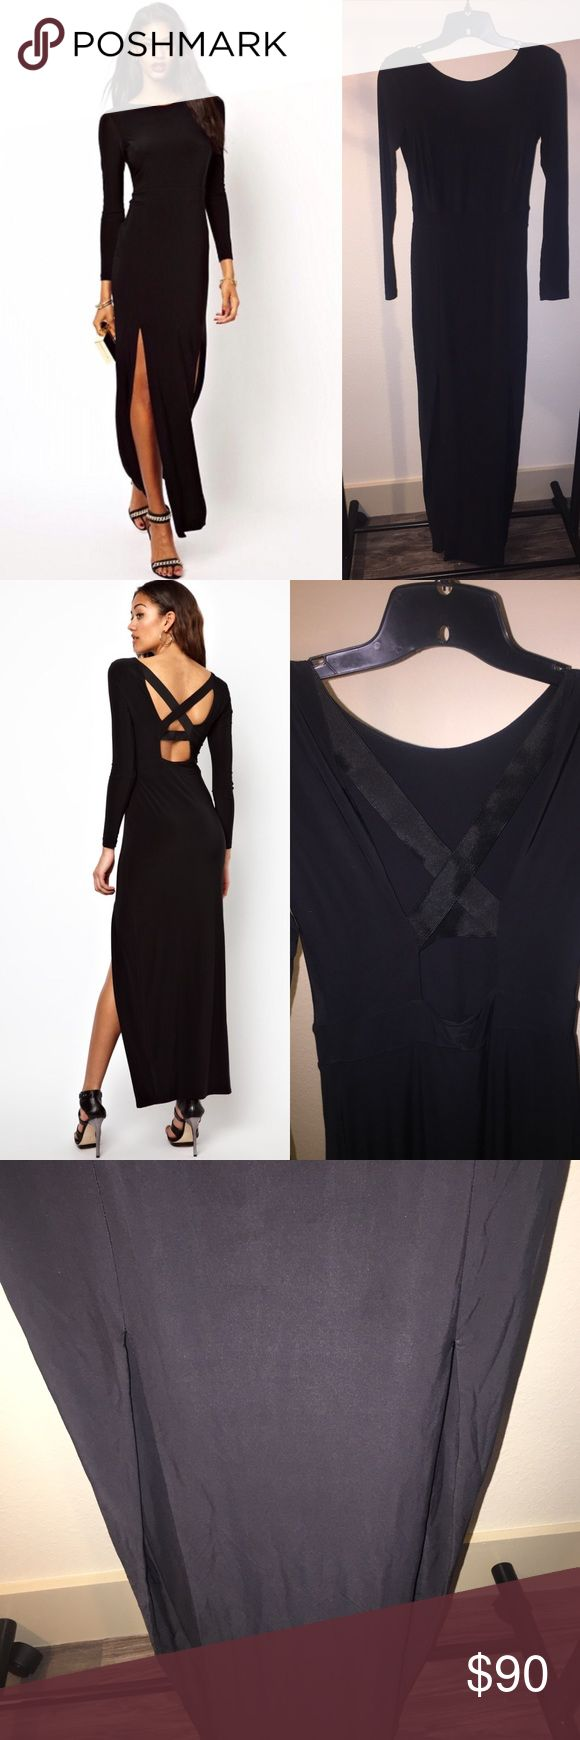 River Island Black Long Sleeve Maxi Dress Sz 2 Tag say 6 but that is a uk 6 which is a us 2.  stretchy material.  No zipper.  Elastic strap detail at the back.  Two splits in the front. River Island Dresses Maxi